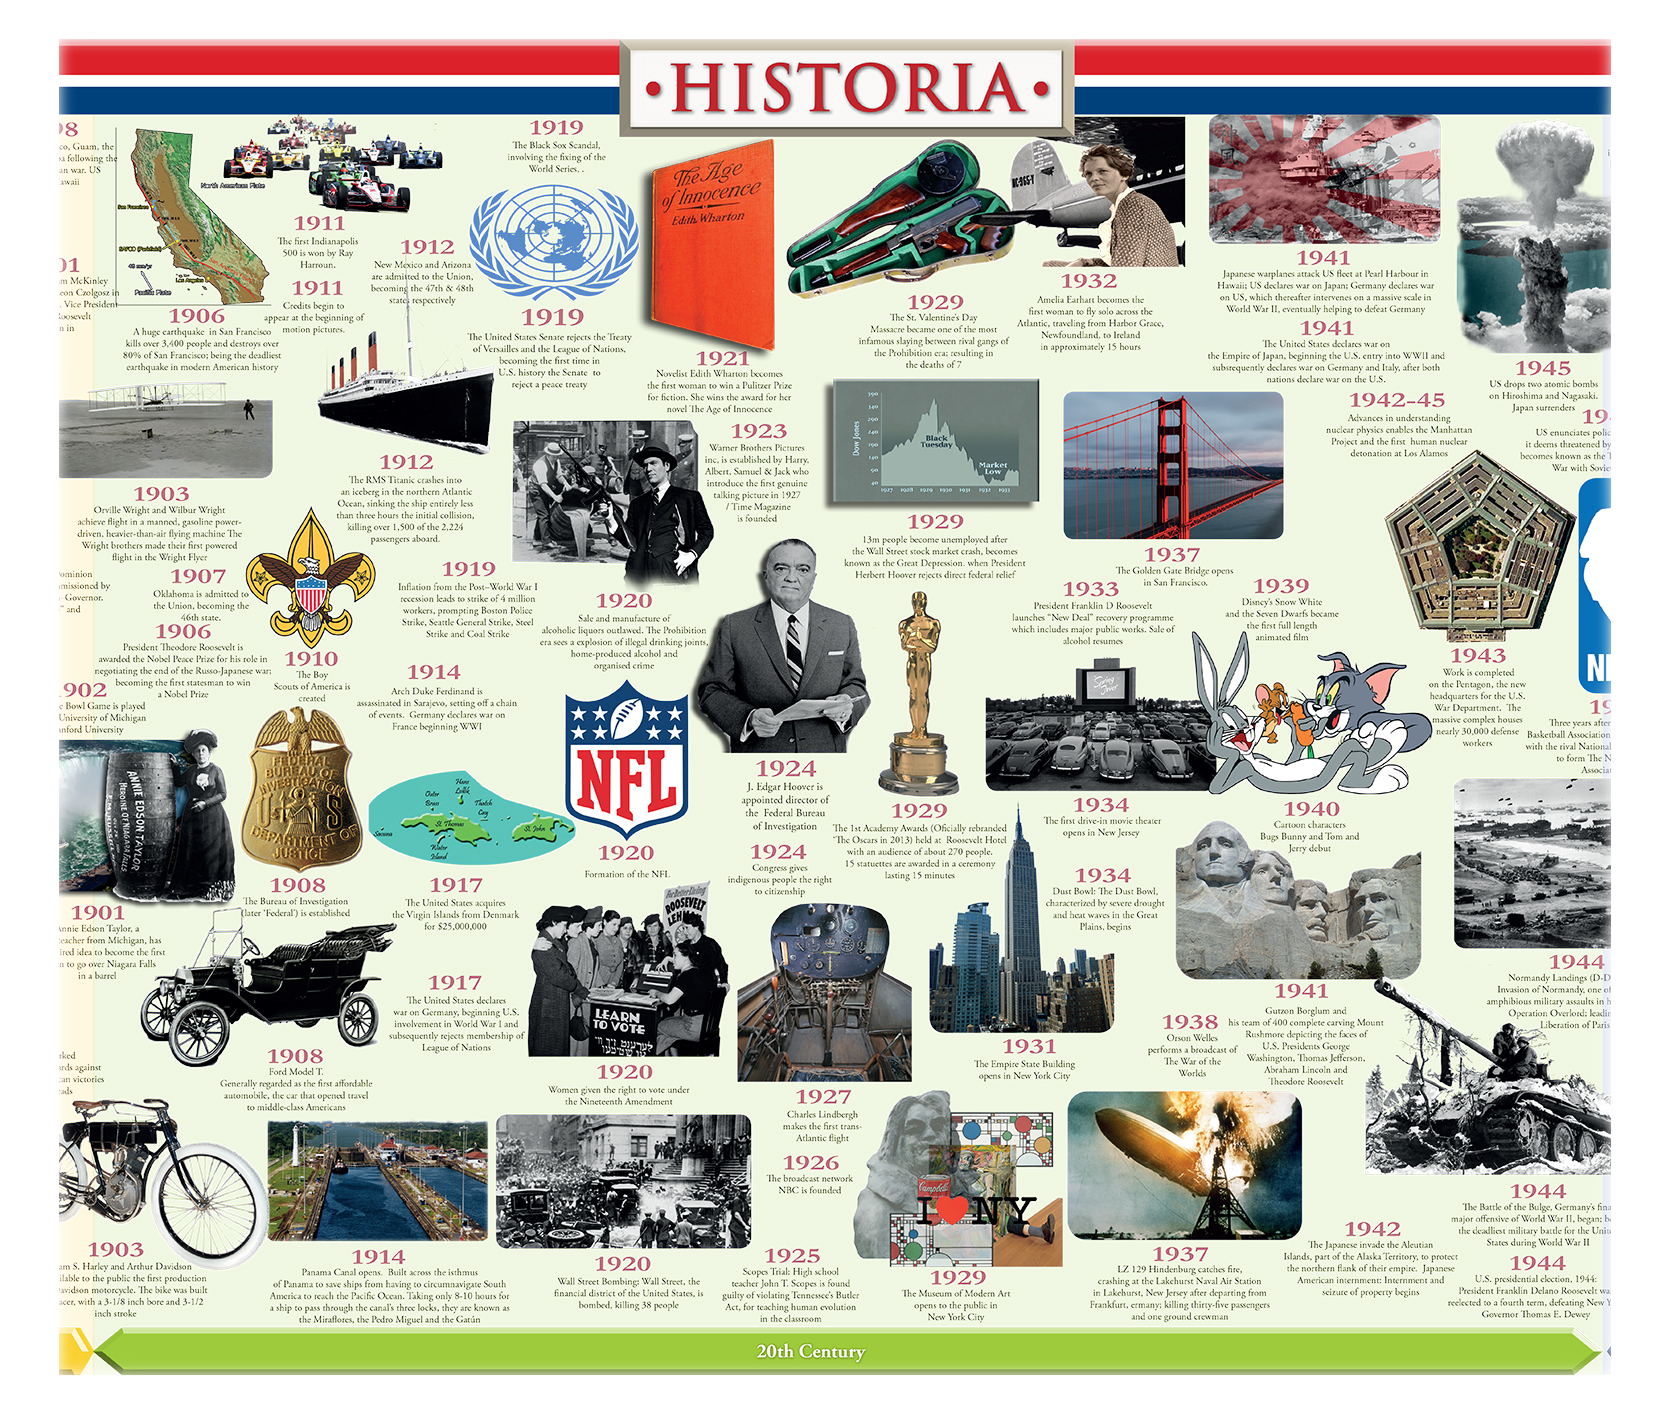 American History Timeline | | Historia Timelines